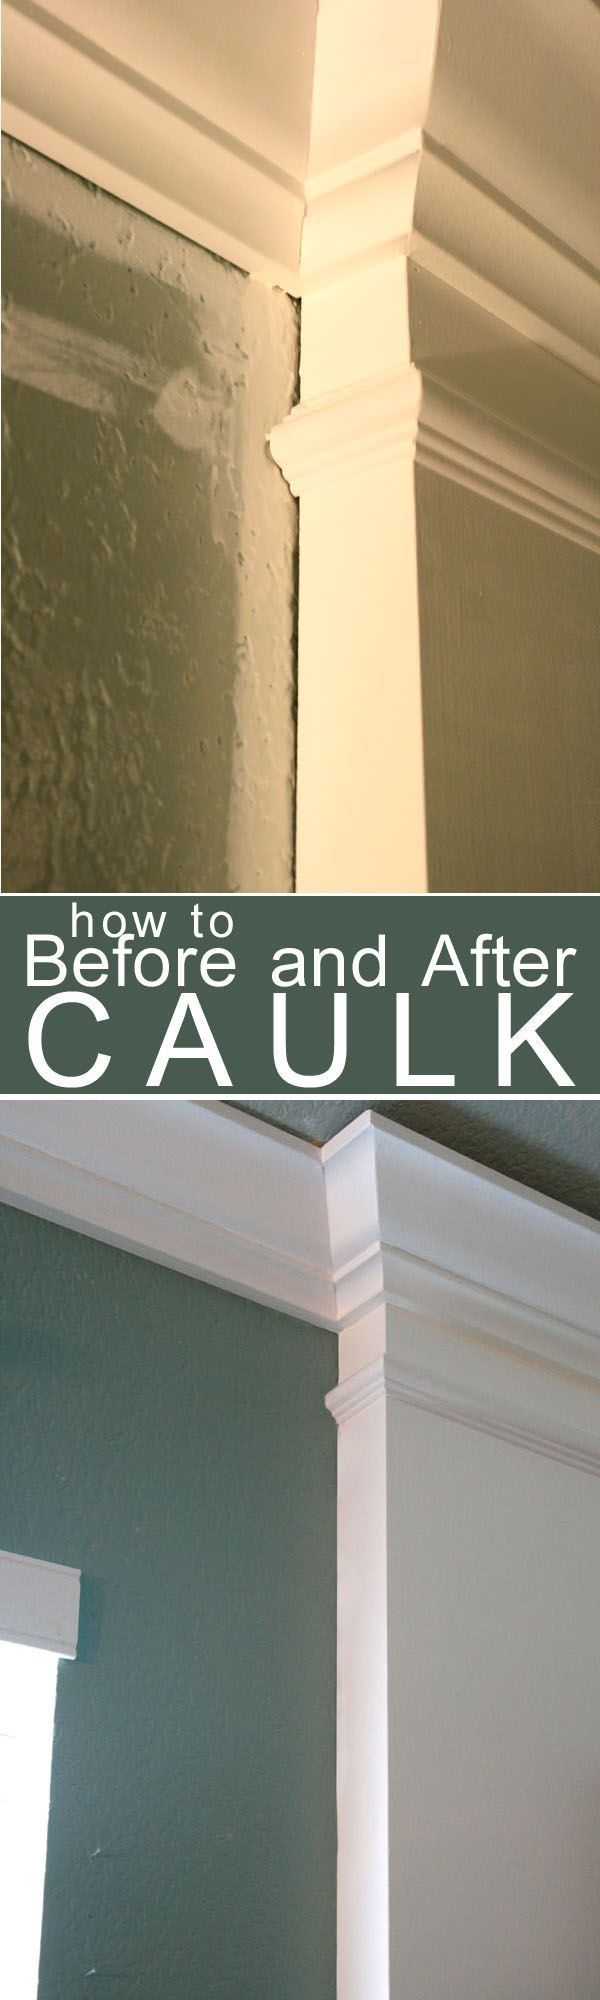 How to Caulk Moldings | House, Moulding and Paint stain